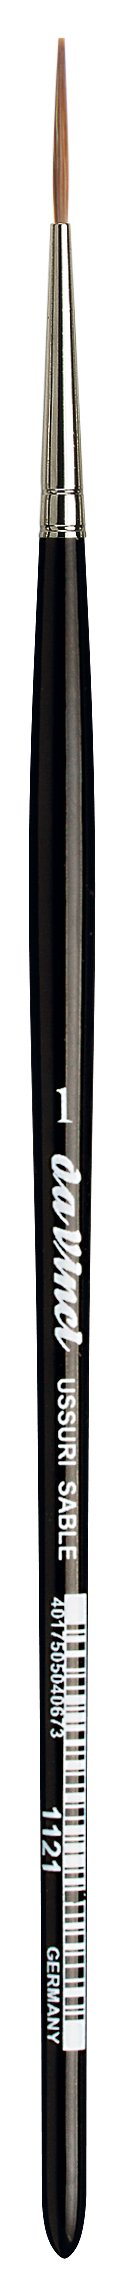 da Vinci Watercolor Series 1121 Sign Painting/Lettering Liner Paint Brush, Straight-Edge Tip Russian Red Sable, Size 1